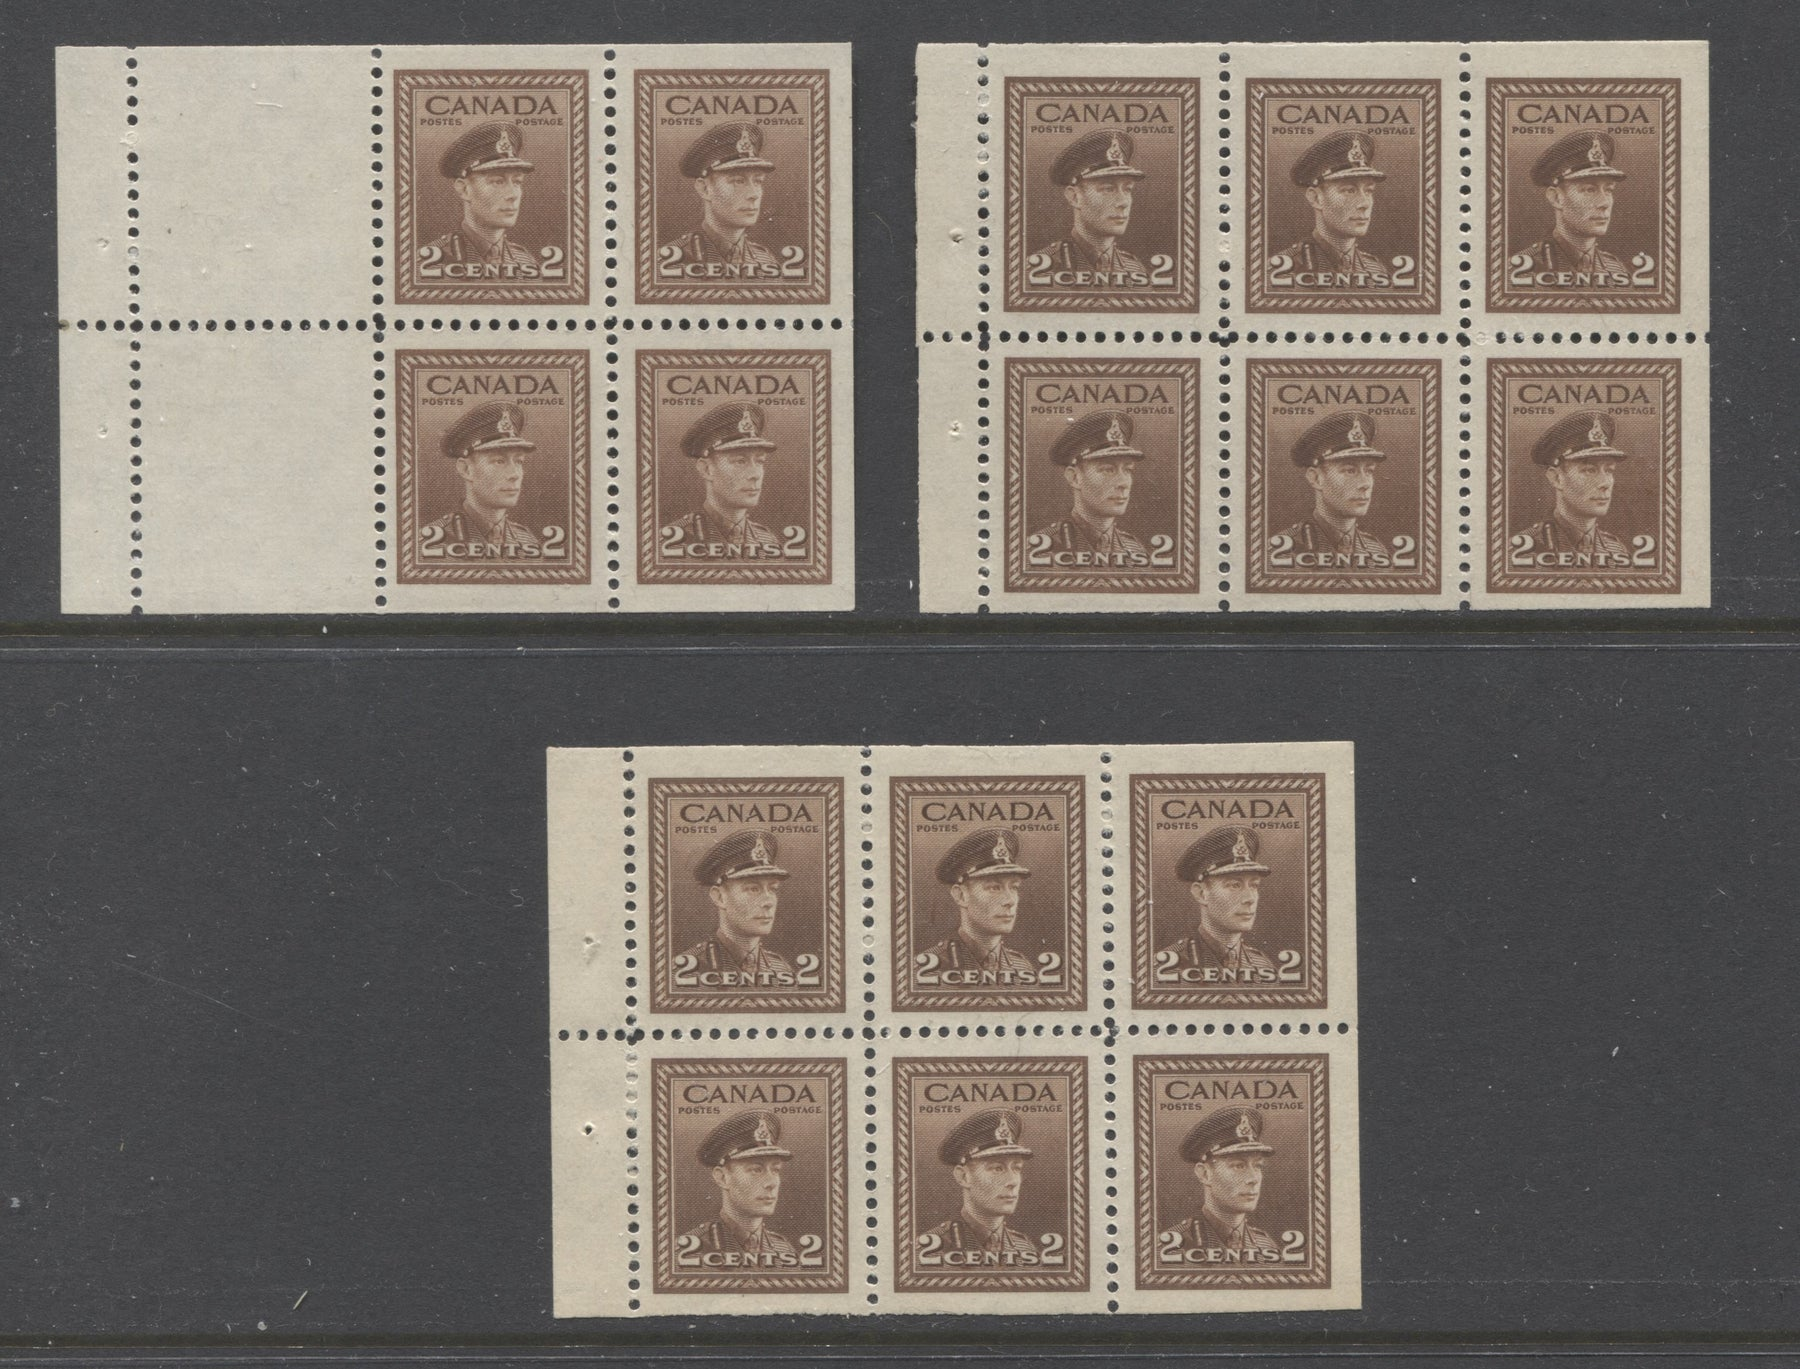 Canada #250a, 250b 2c Brown King George VI, 1942-1949 War Issue, A Group of 3 VFNH Booket Panes of 6, and 4 +2 Labels, Printed on Different Papers and With Different Tab Widths Brixton Chrome